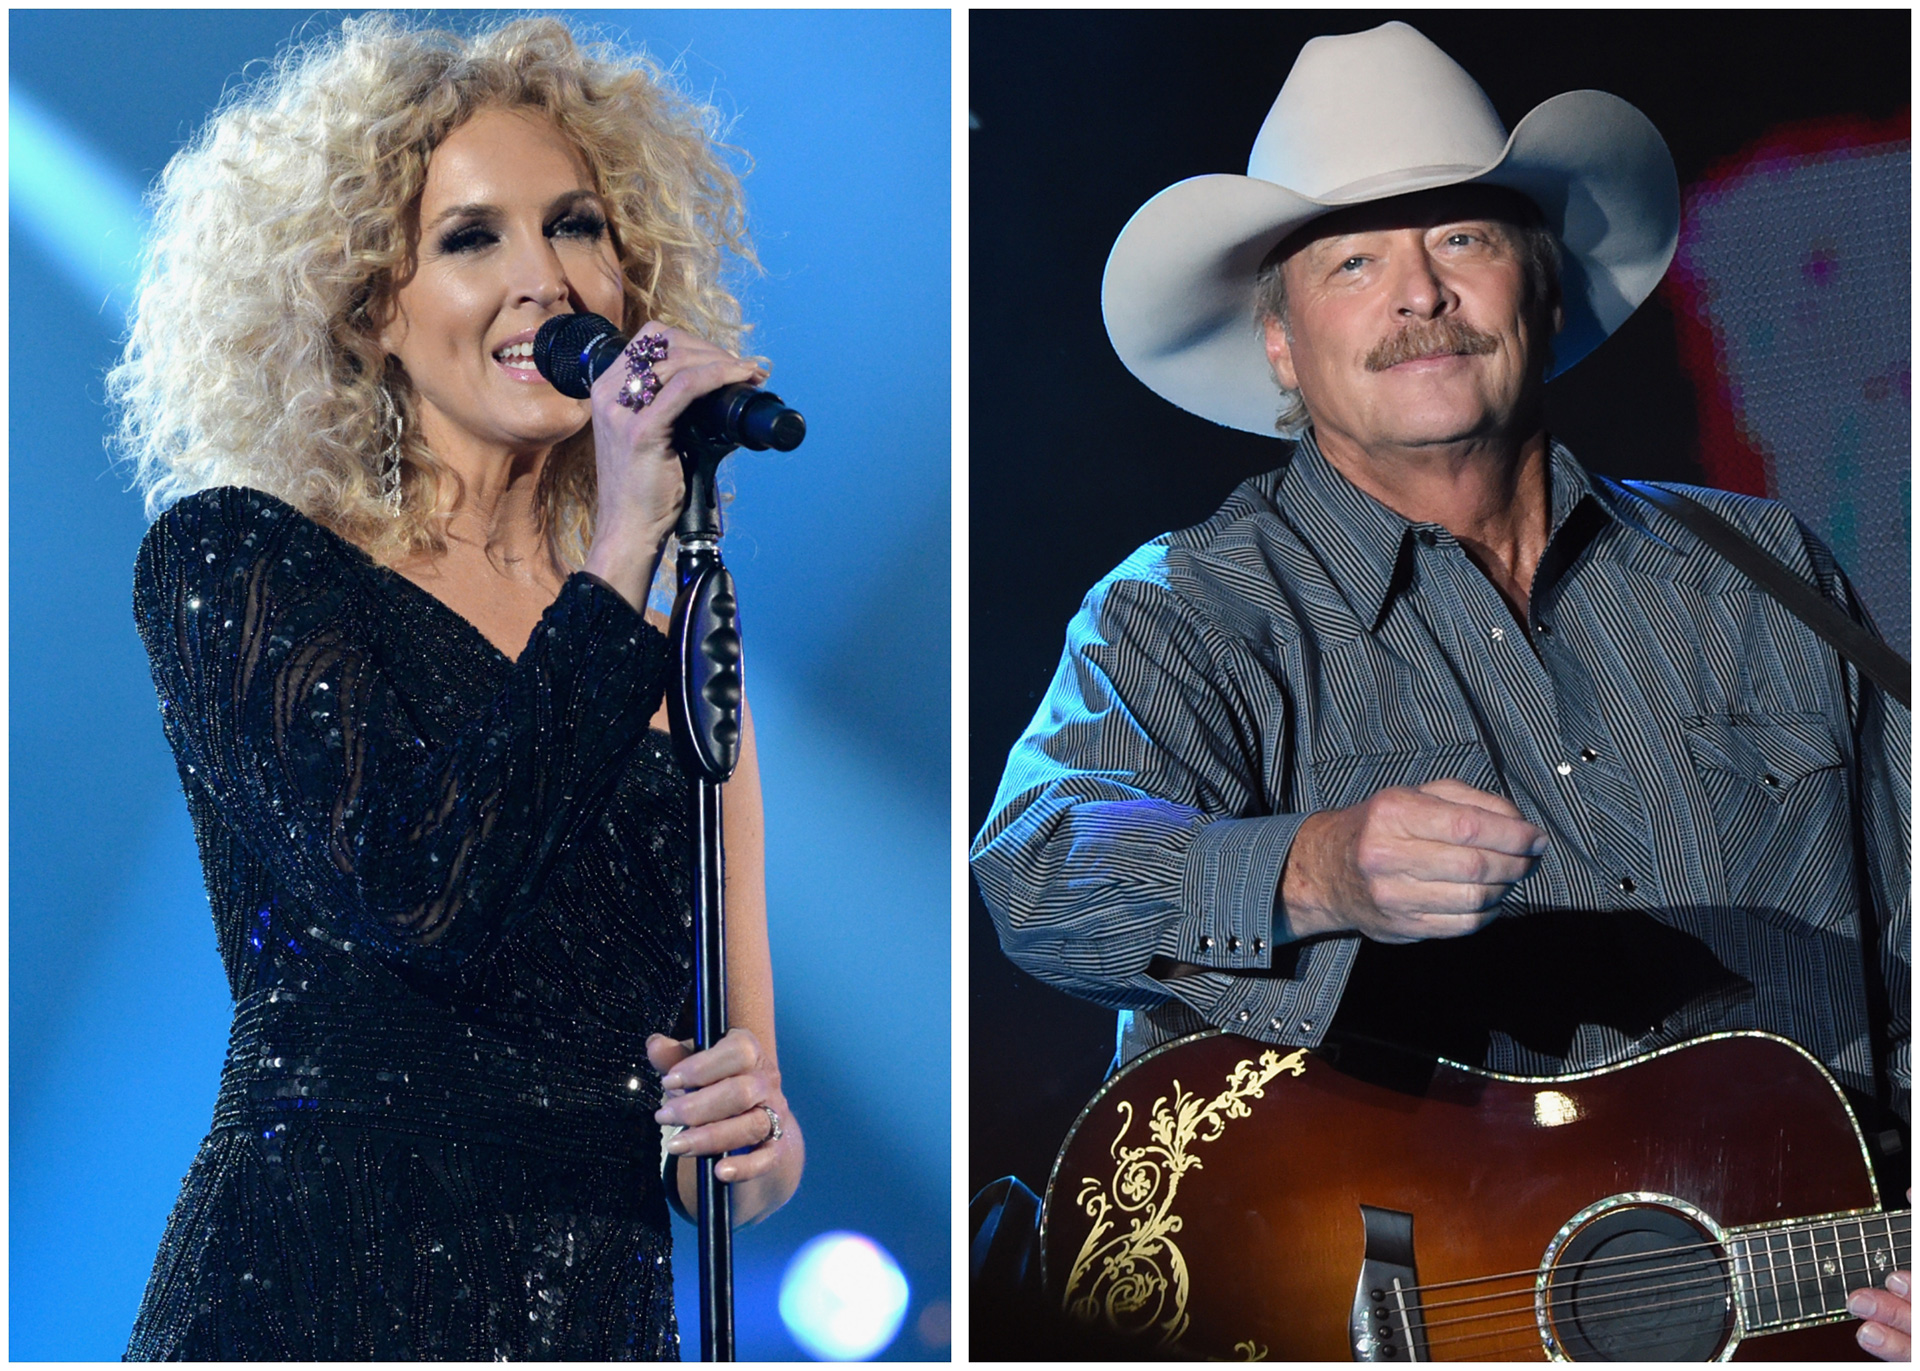 Kimberly Schlapman, Alan Jackson. Courtesy Getty Images.